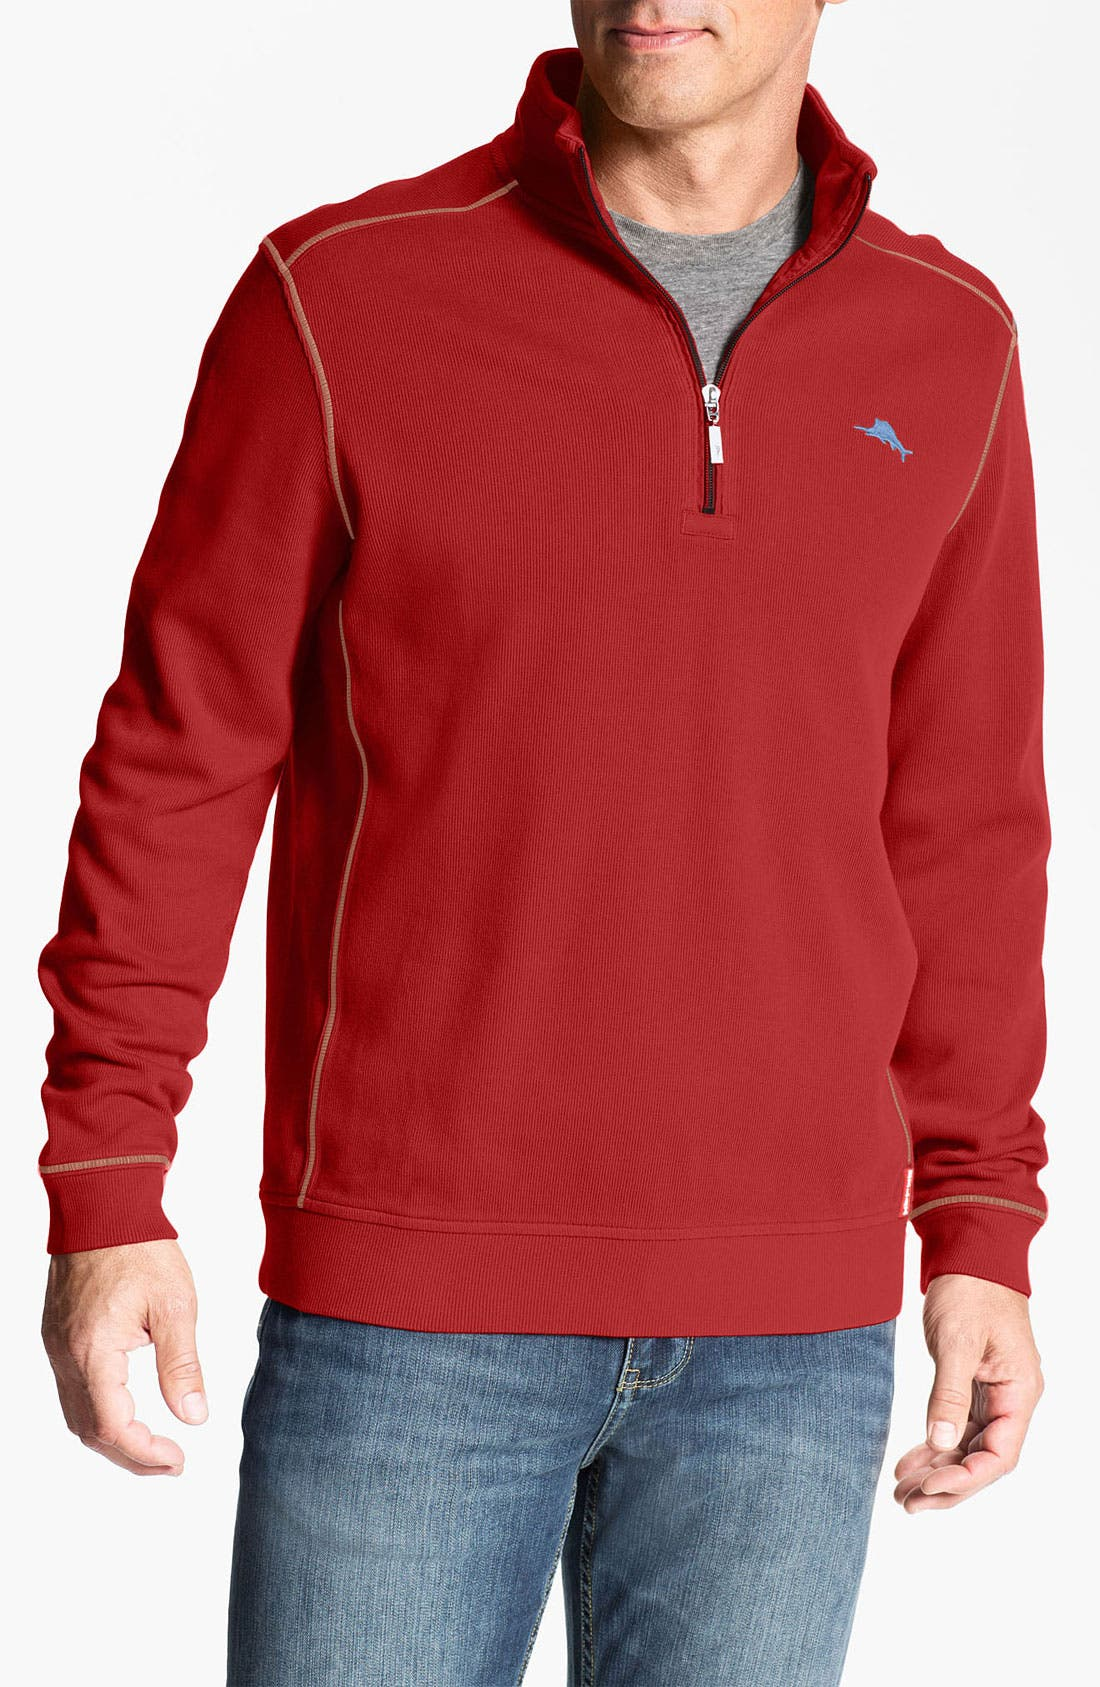 Main Image - Tommy Bahama 'Antigua Cove' Half Zip Pullover